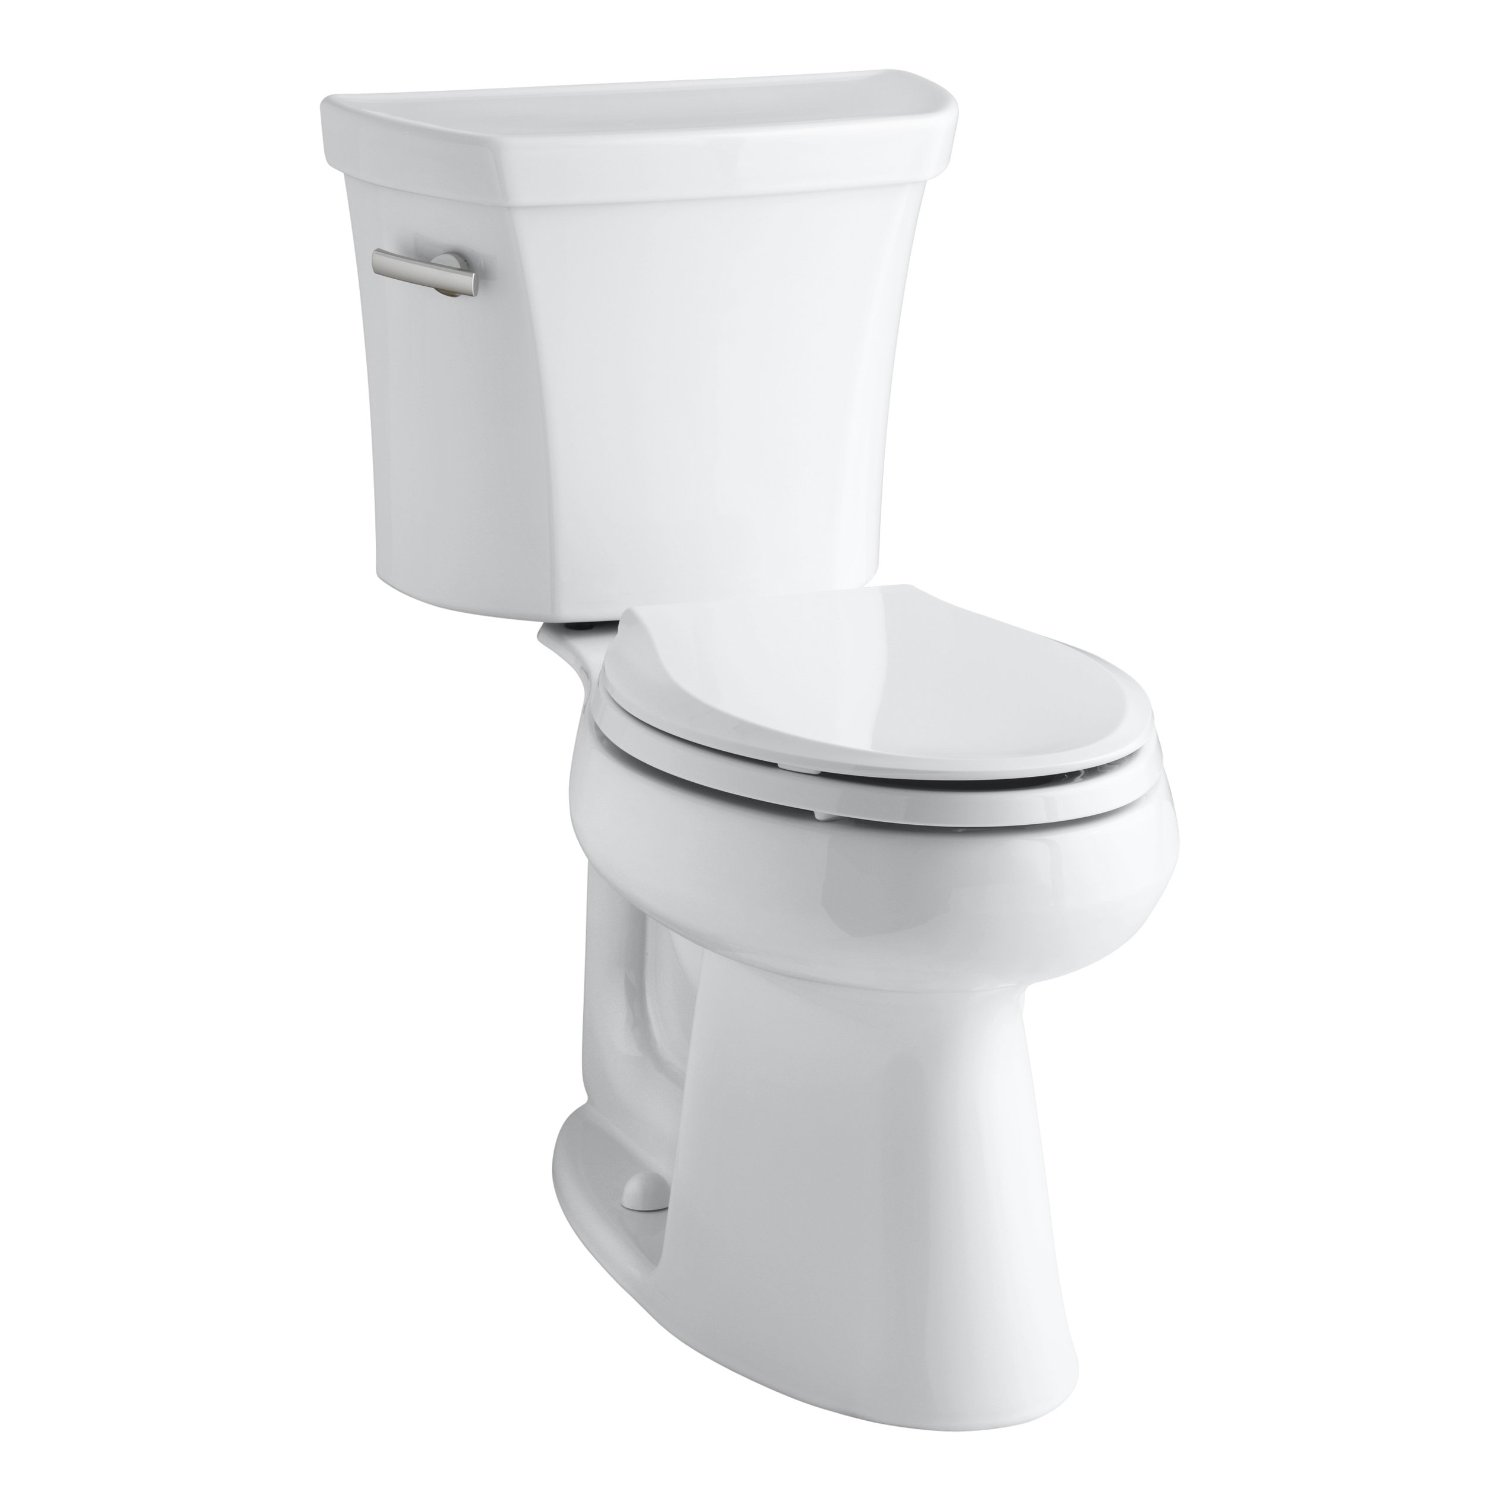 Cheap Kohler Toilets : Toilets with Discount Price in Bay Area - Sinere Home Decor